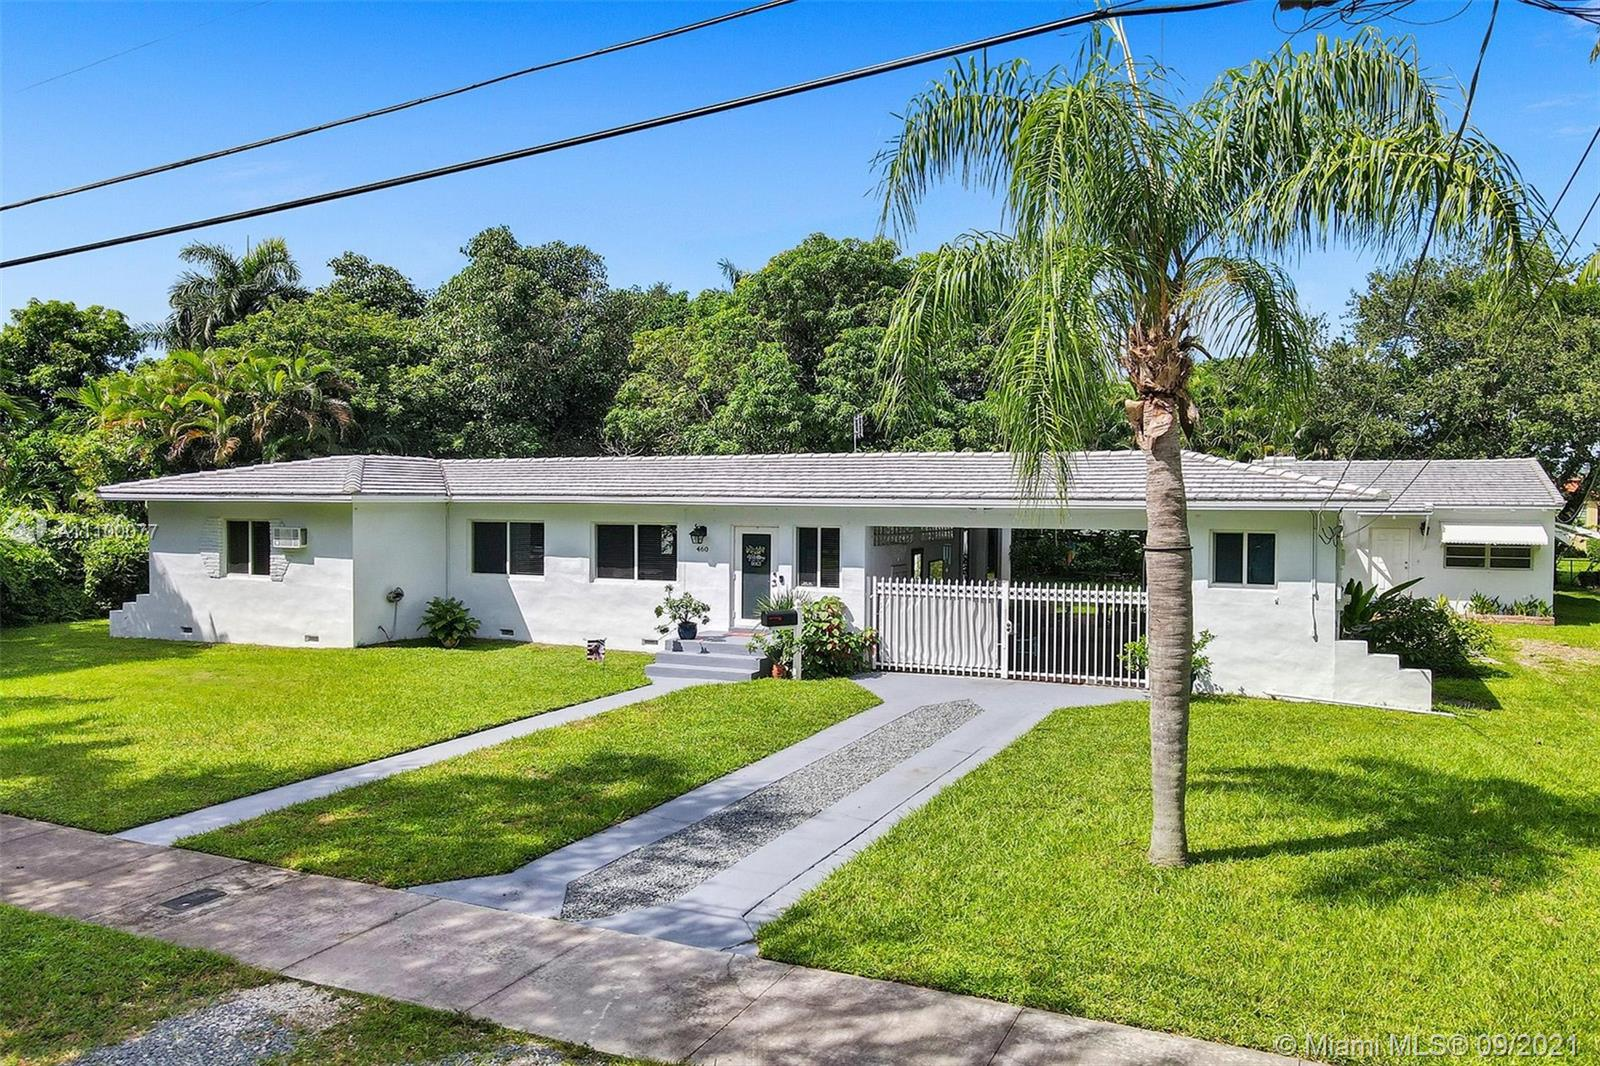 Single Family Home,For Sale,460 Lee Dr, Miami Springs, Florida 33166,Brickell,realty,broker,condos near me